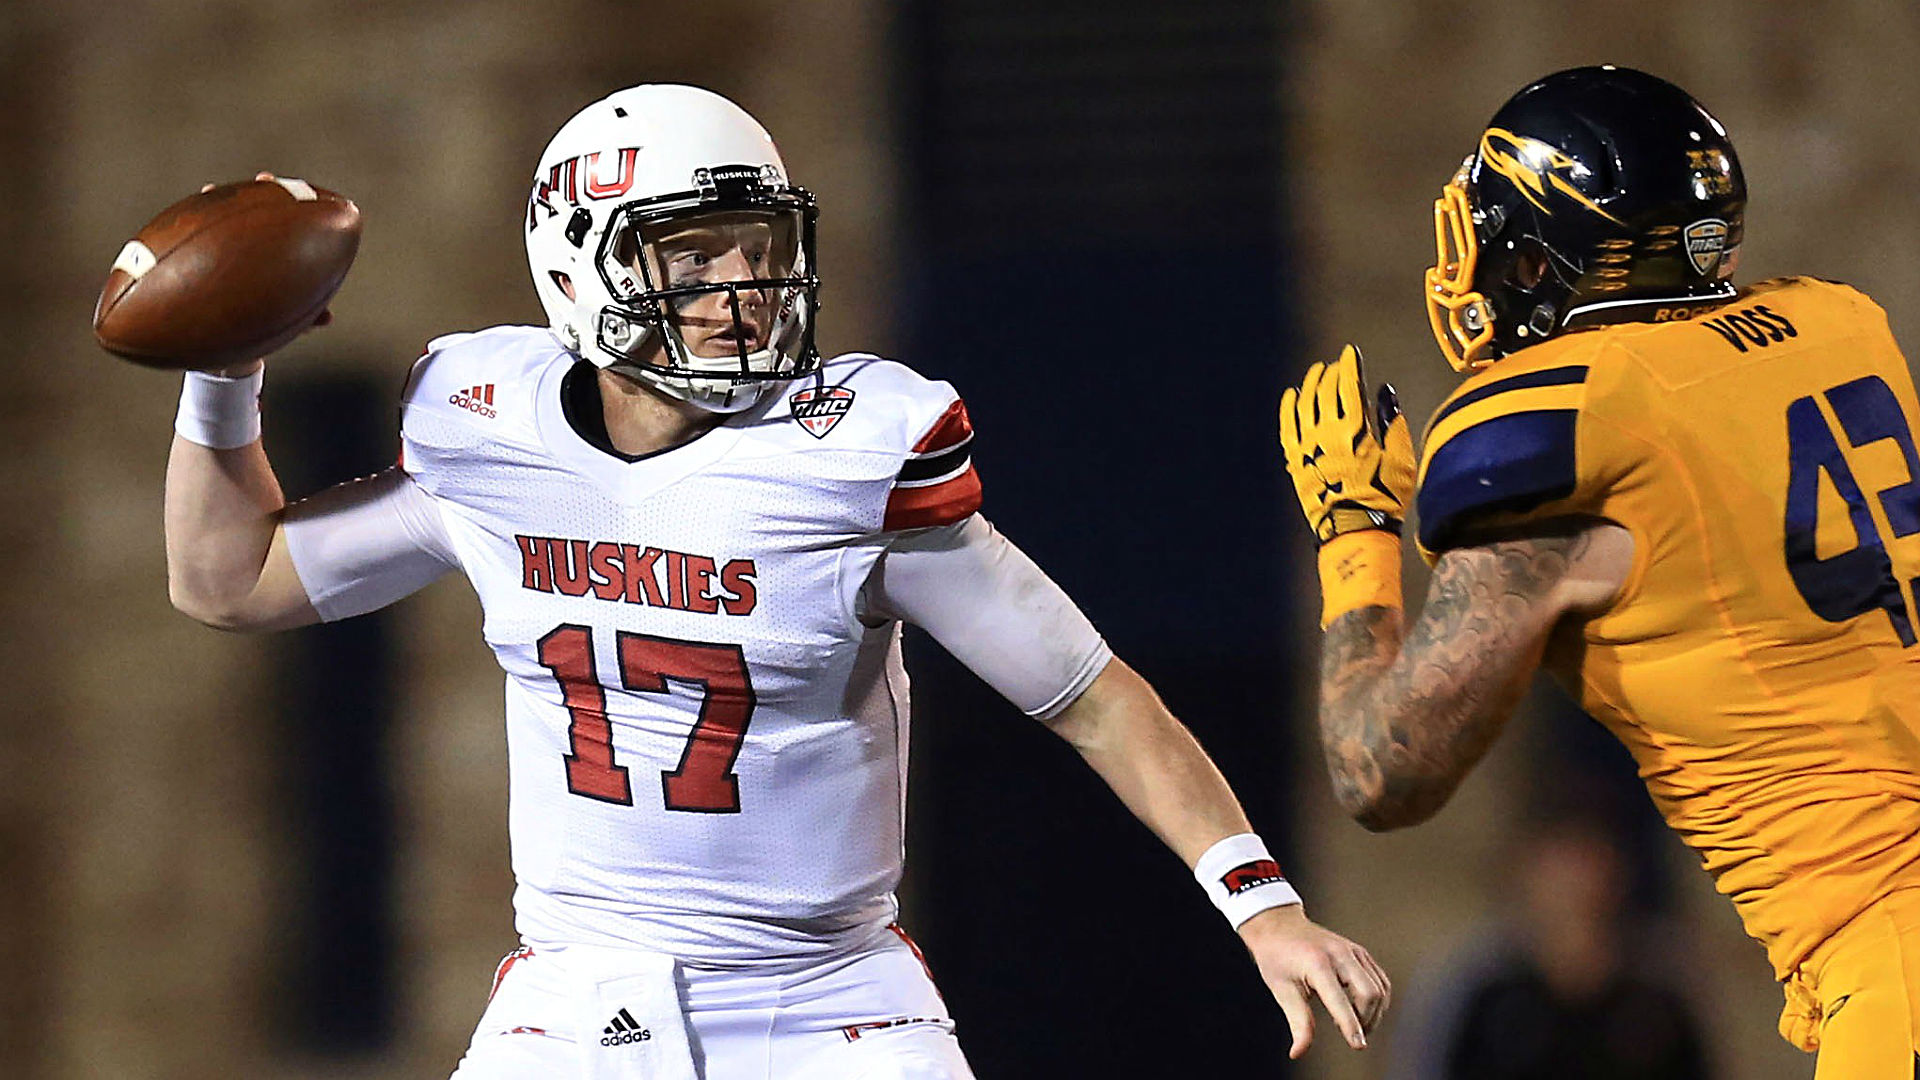 Tuesday MACtion betting lines and picks – Bowling Green, Northern Illinois laying double-digit spreads